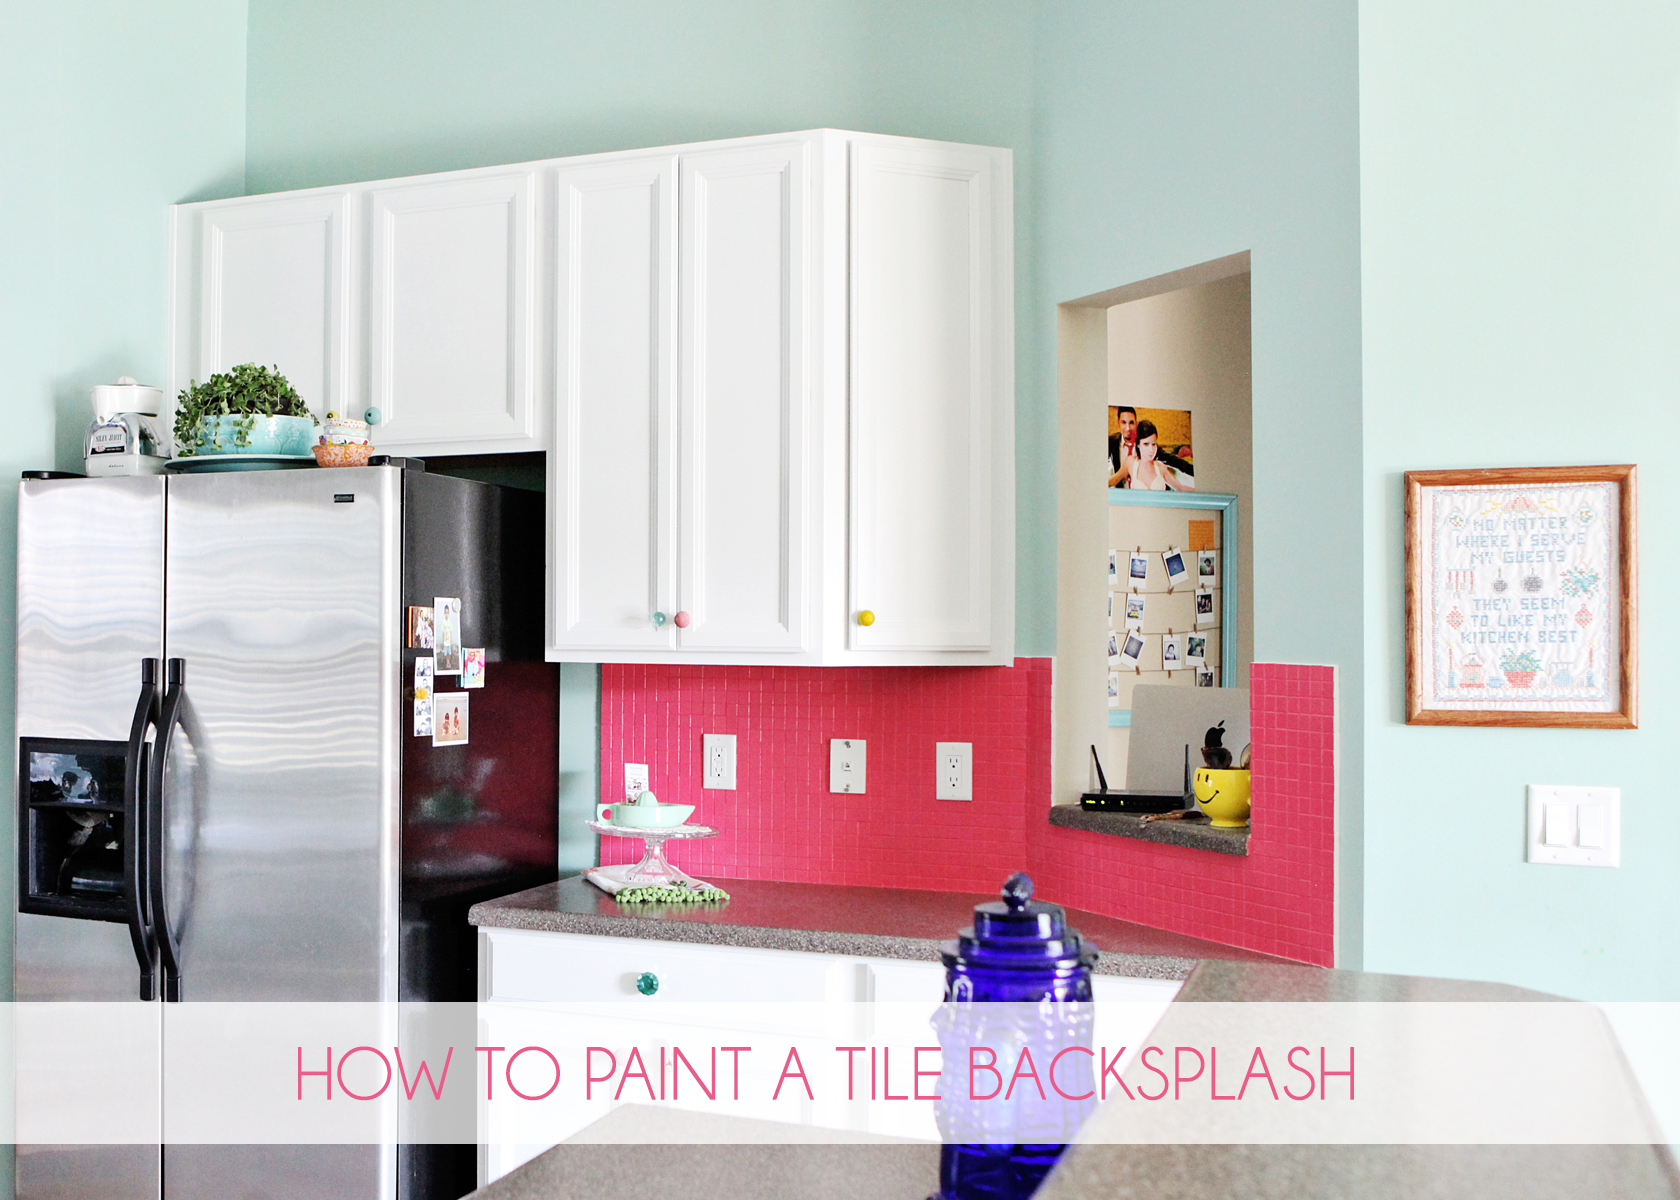 How to Paint a Tile Backsplash